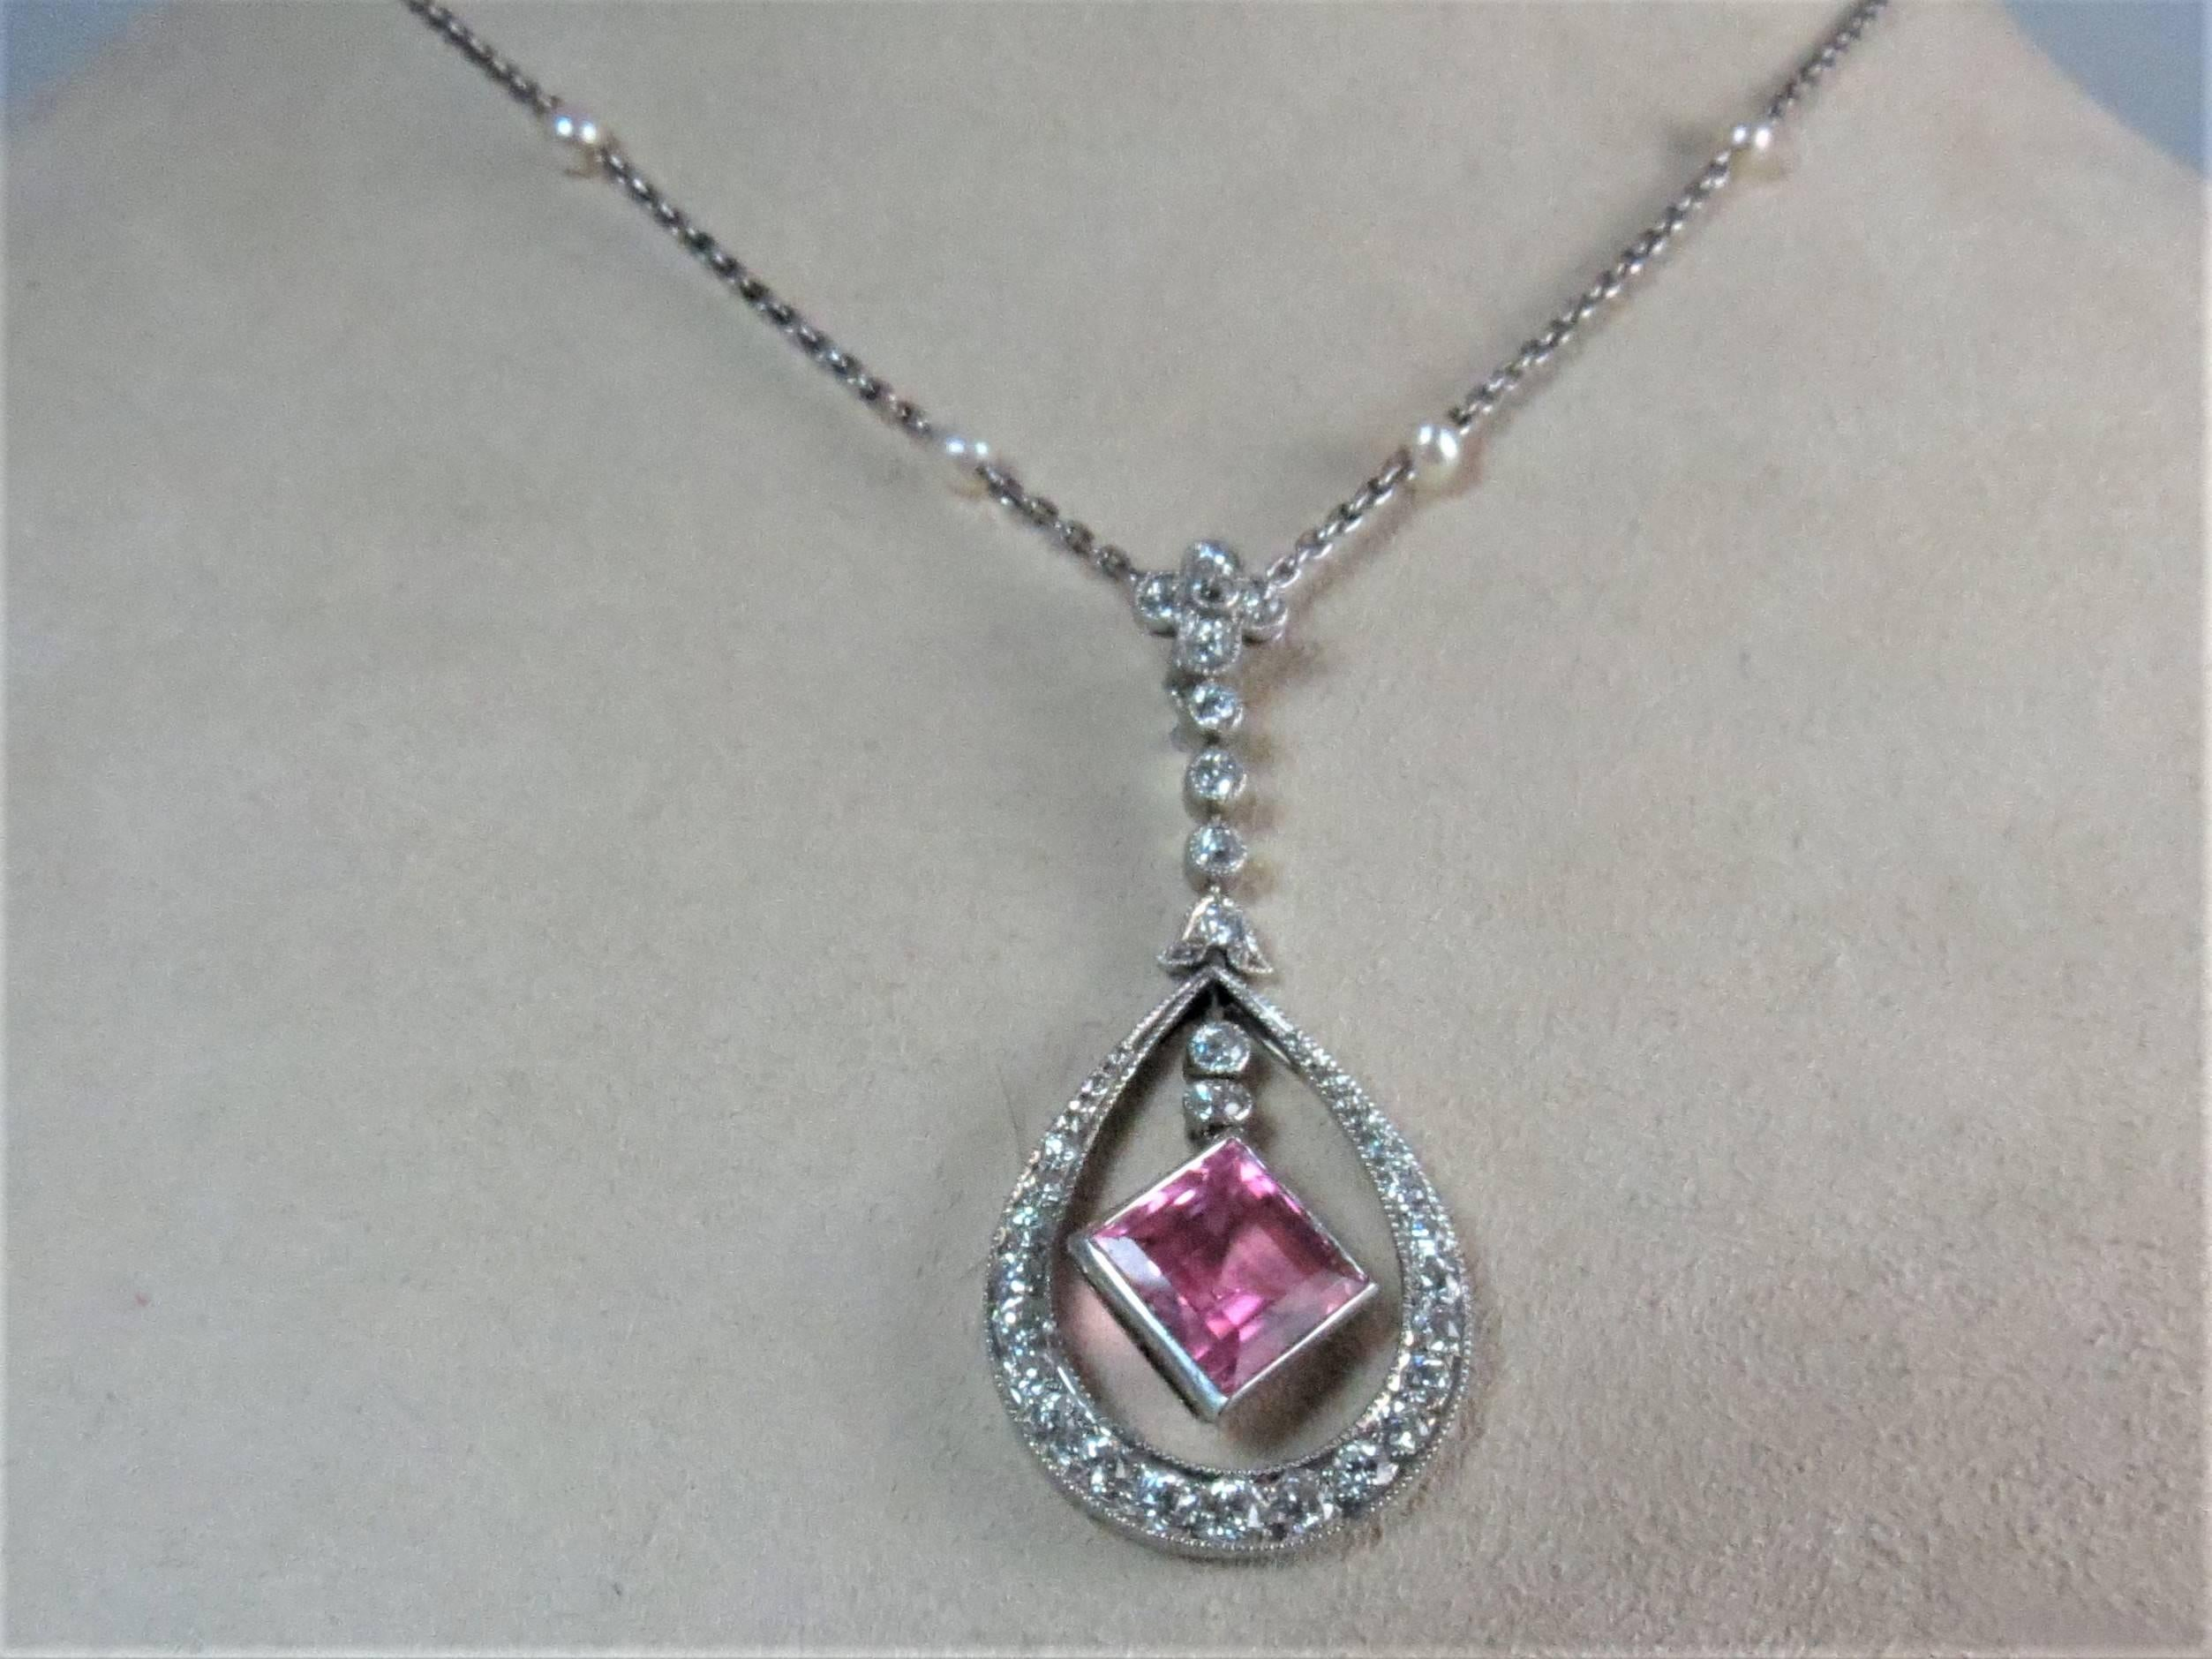 pendant studio image woolf sterling products tourmaline silver pink vanessa